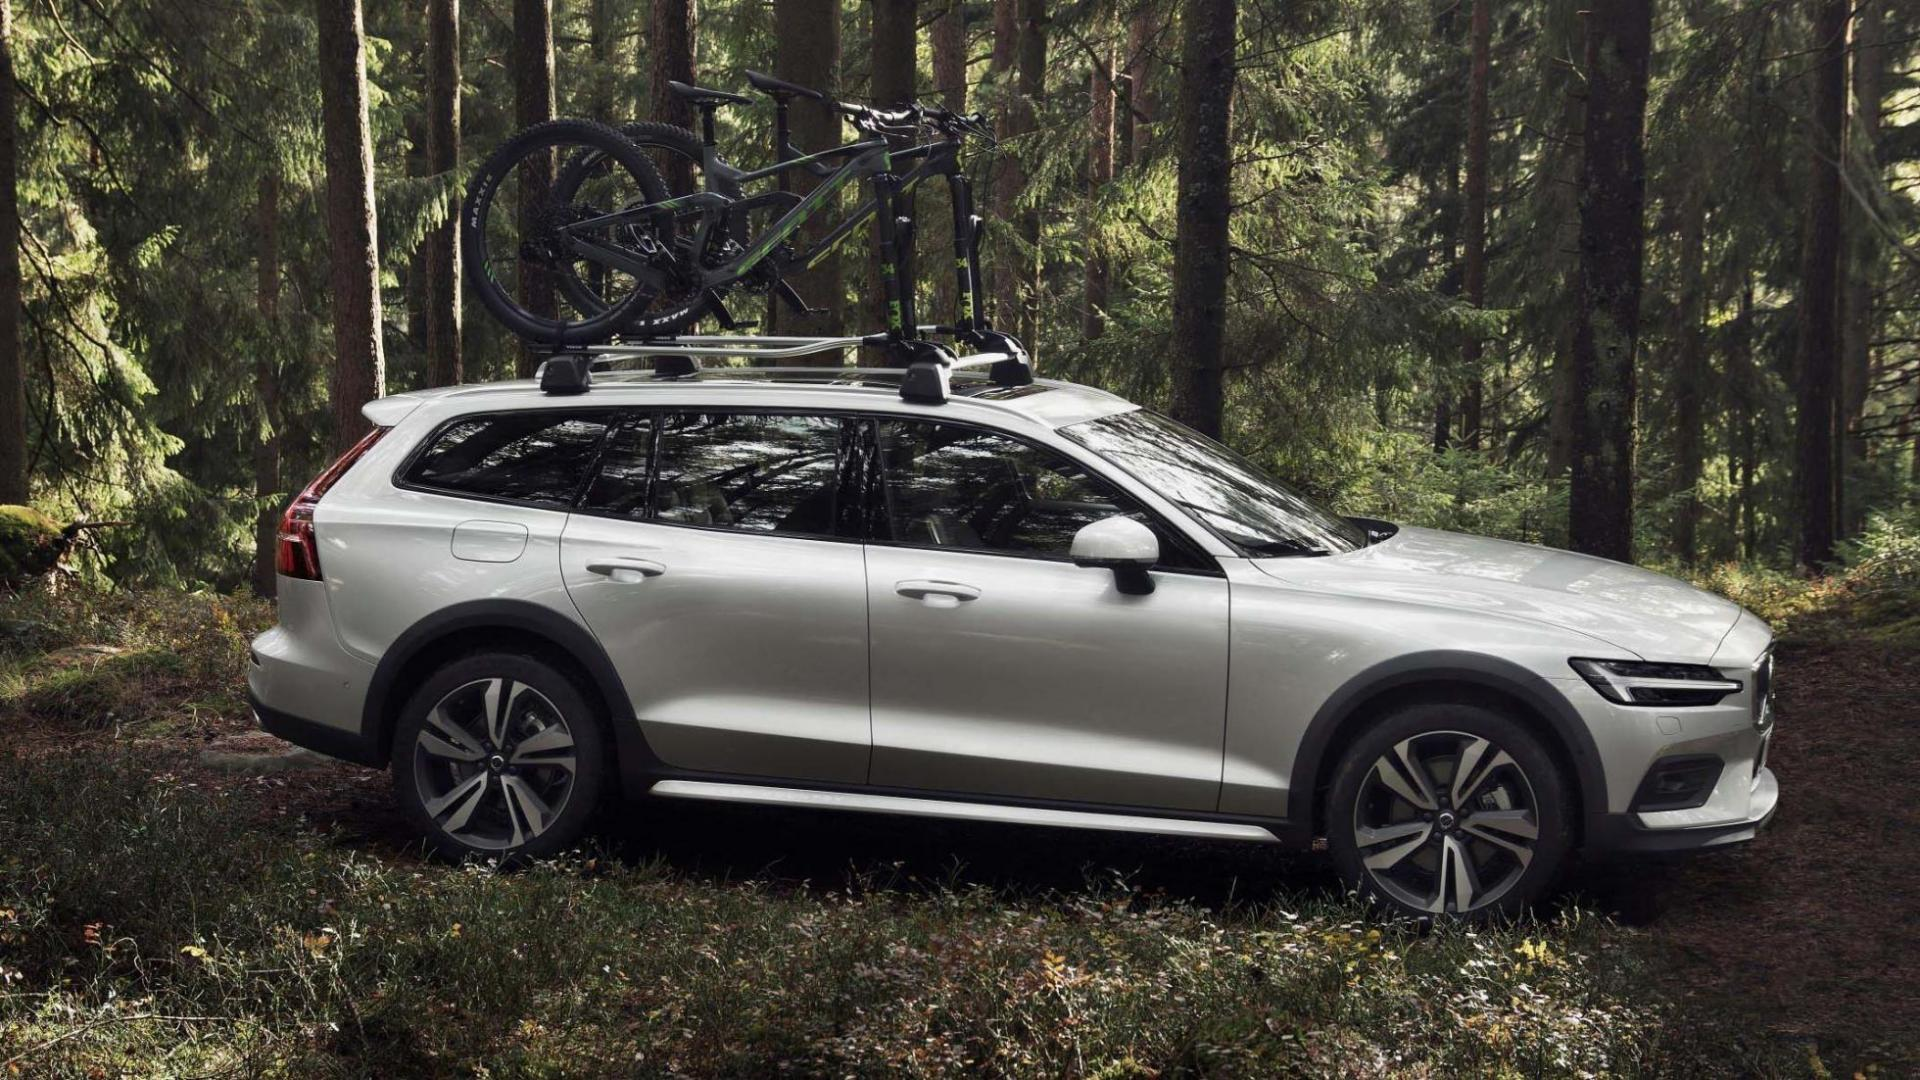 Volvo V60 Cross Country fiets bos dakdrager